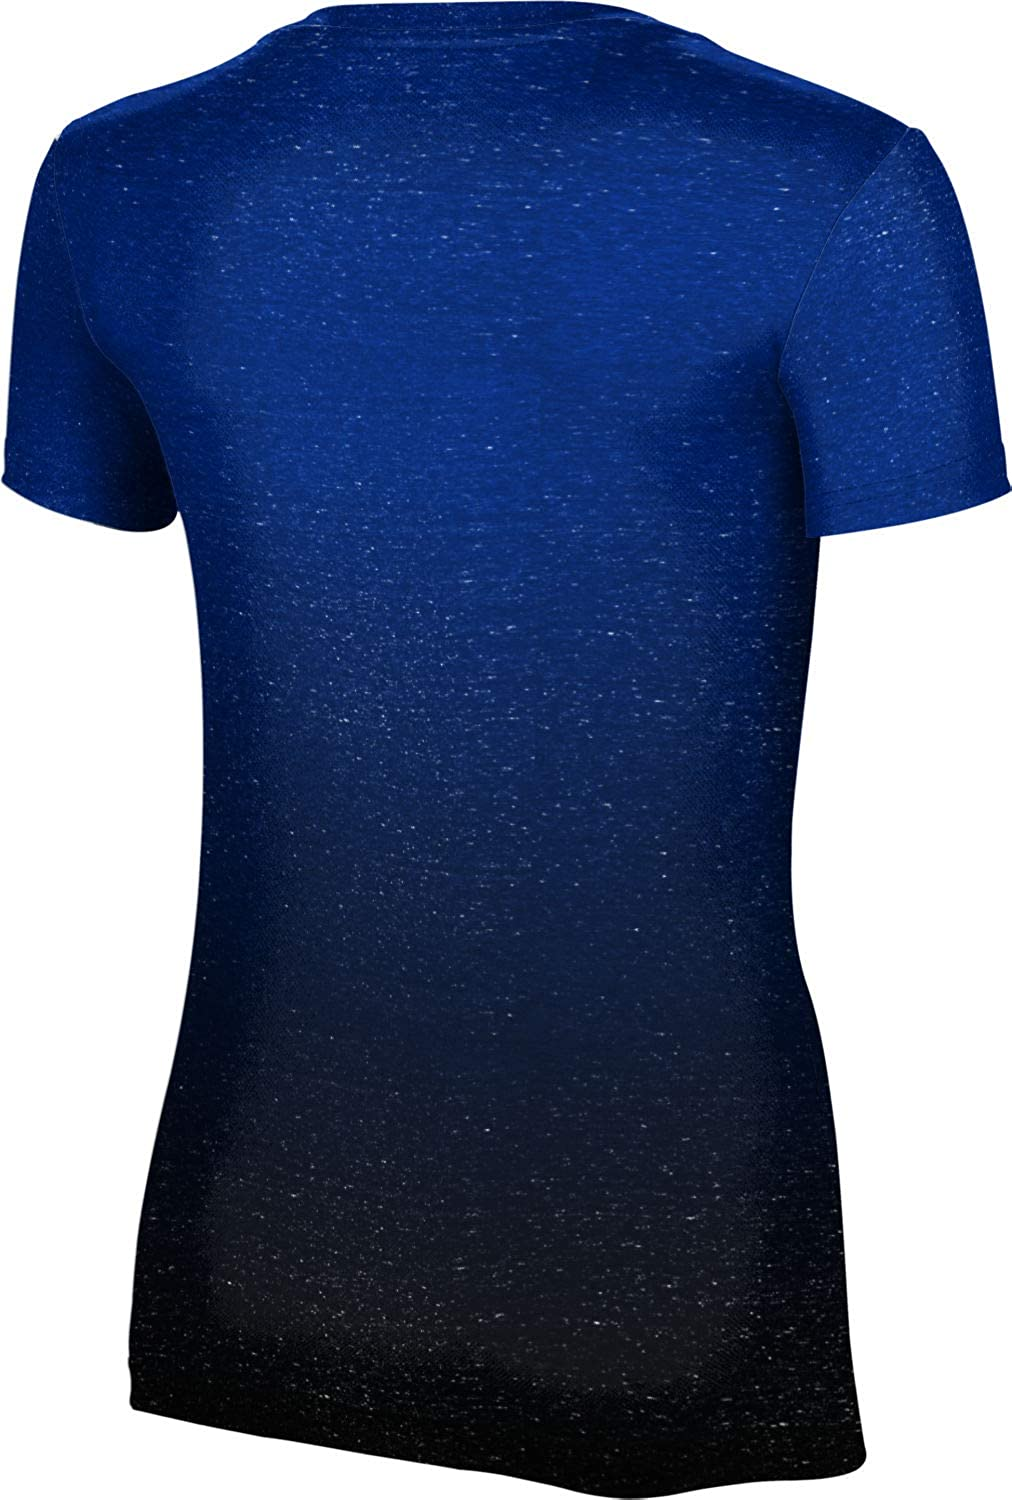 ProSphere Miamisburg High School Girls' Performance T-Shirt (Ombre)